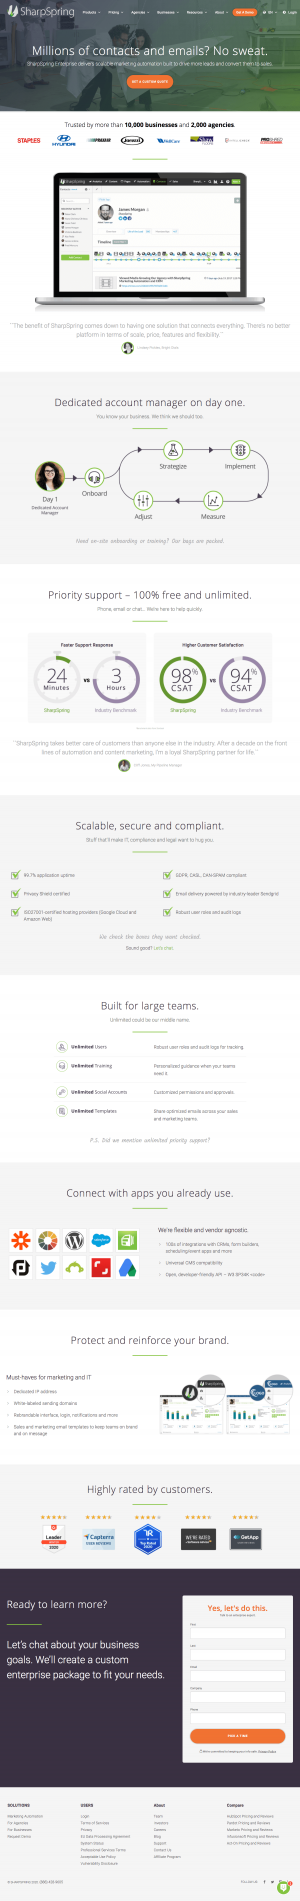 SharpSpring – Pricing page 2